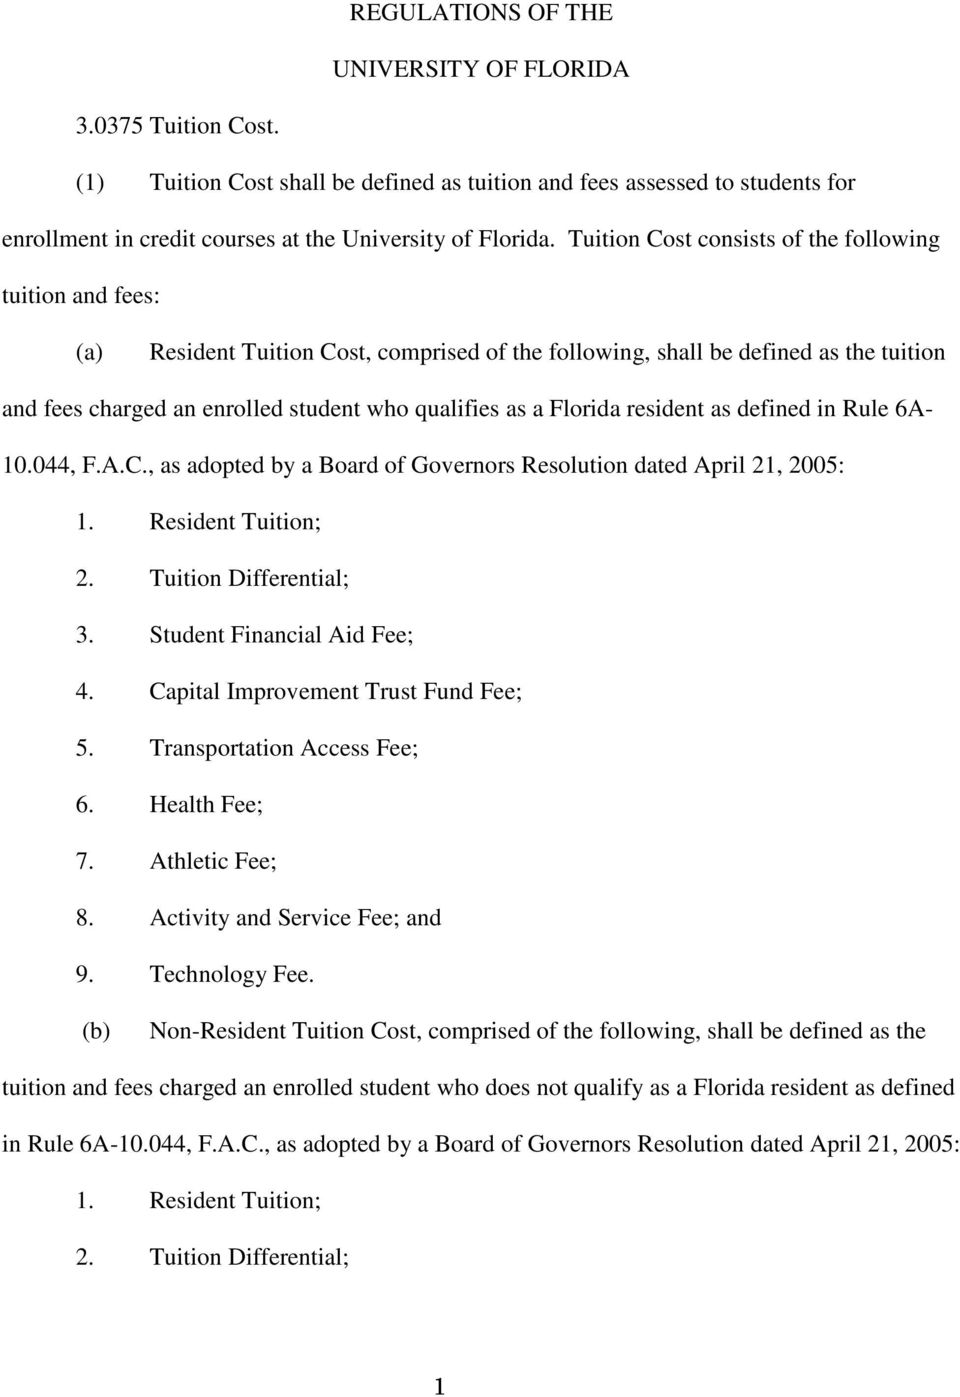 as defined in Rule 6A- 10.044, F.A.C., as adopted by a Board of Governors Resolution dated April 21, 2005: 1. ; 2. Tuition Differential; 3. Aid Fee; 4. Improvement Trust Fund Fee; 5. Access Fee; 6.